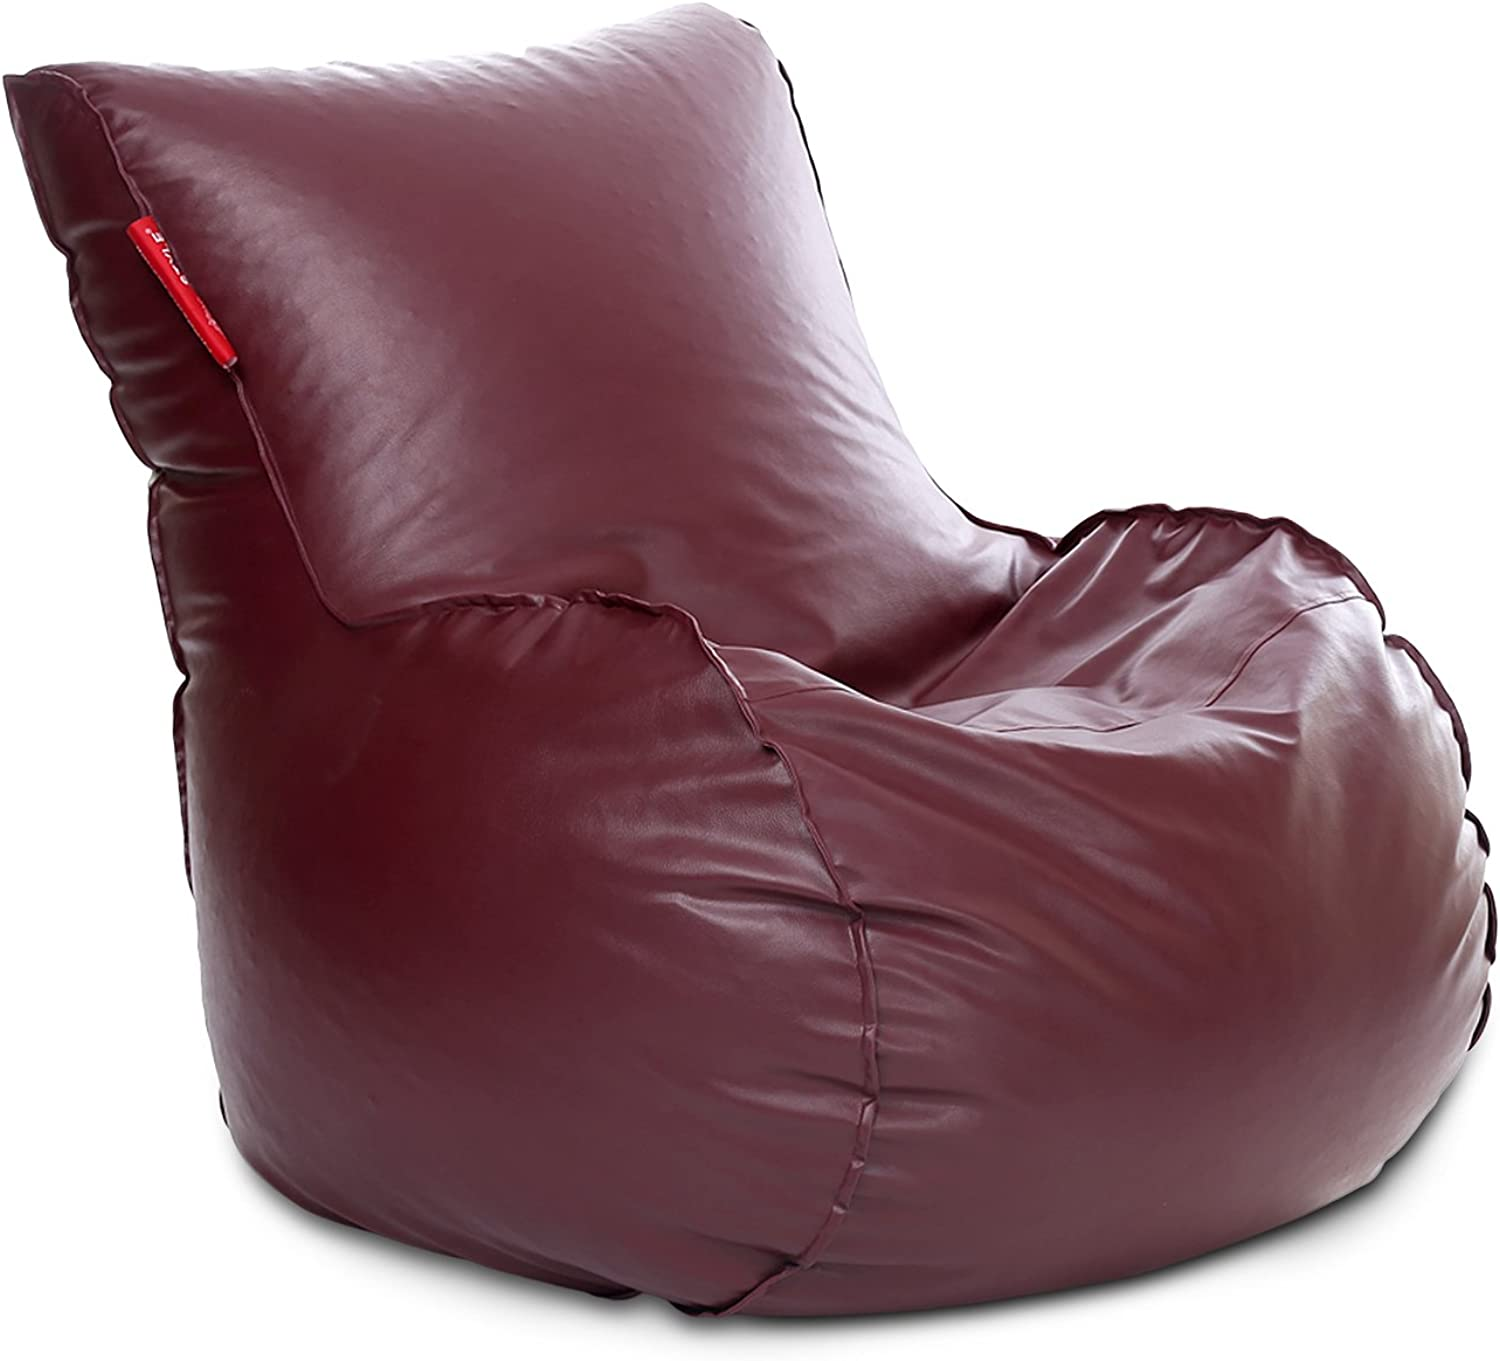 Style Homez Mambo Bean Bag XXXL Size Maroon Cover Only